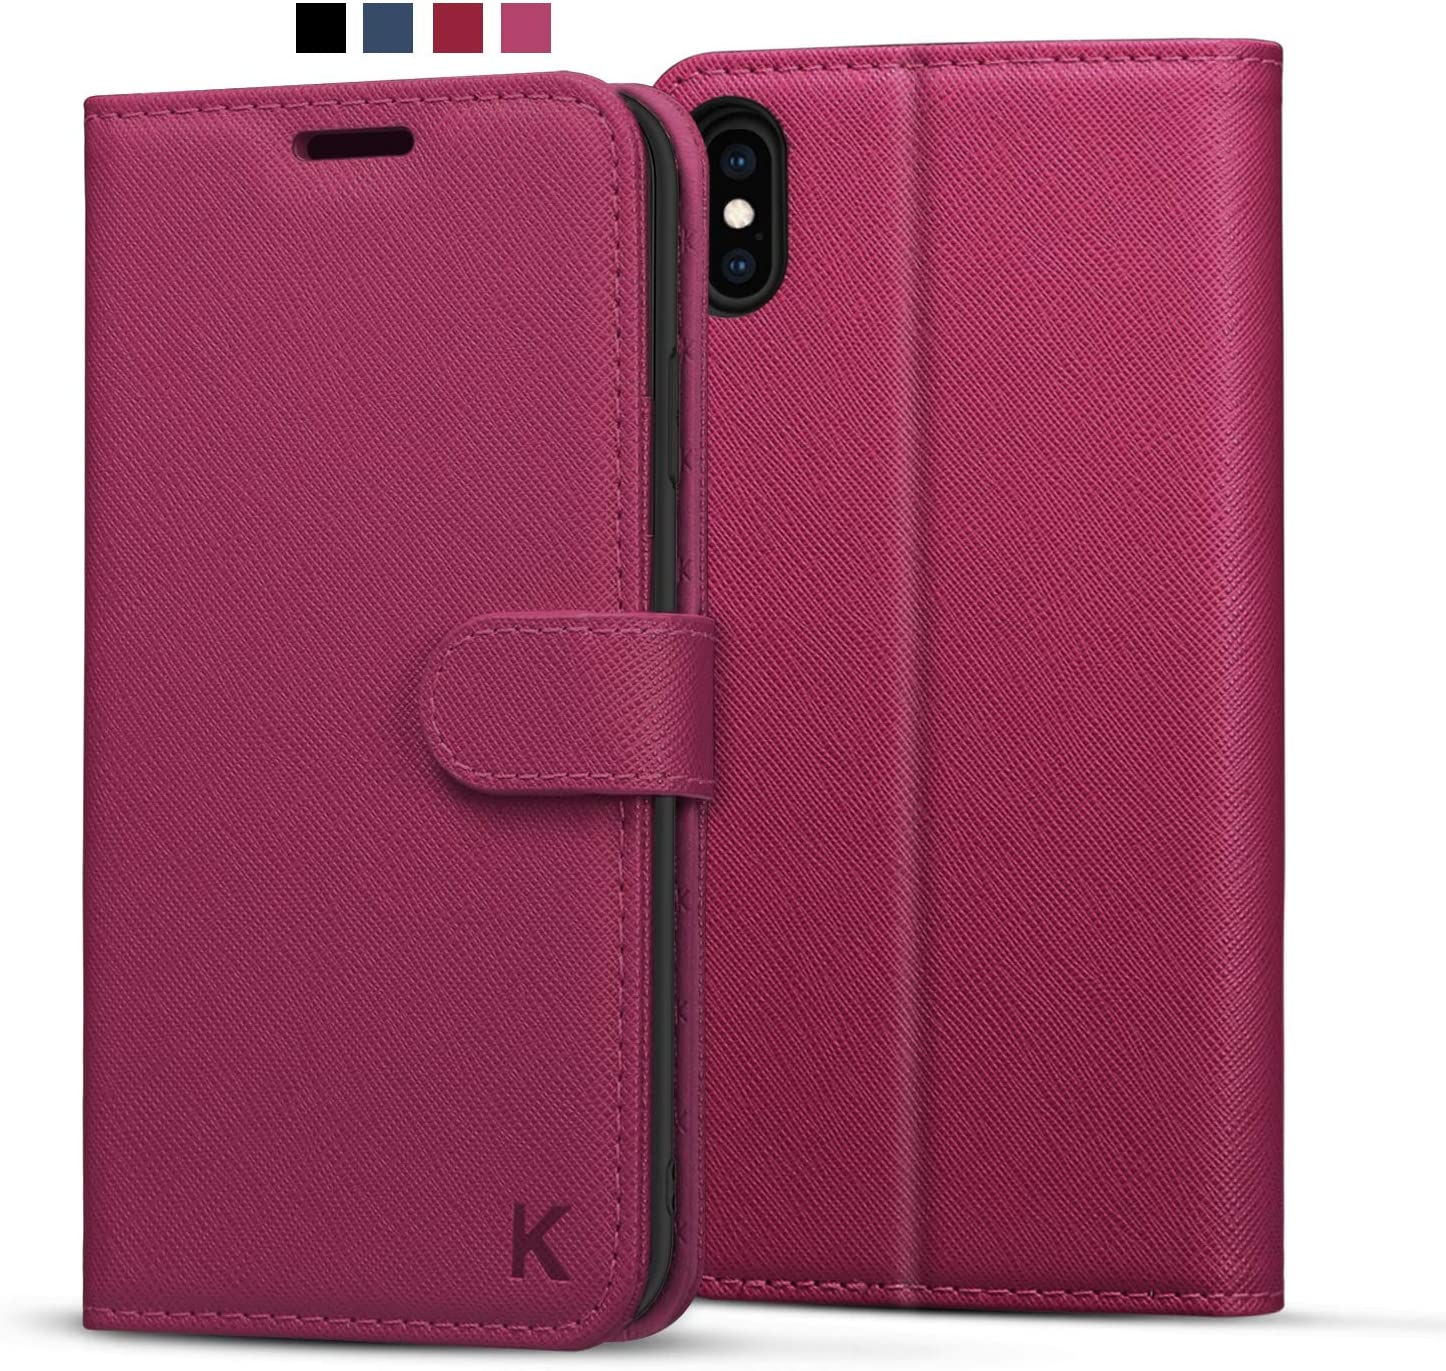 KILINO iPhone Xs Wallet Case, iPhone X Flip Case [Saffiano Leather] [RFID Blocking] [Shock-Absorbent Bumper] [Card Slots] [Folding Stand] Folio Case Compatible with iPhone X - Magenta